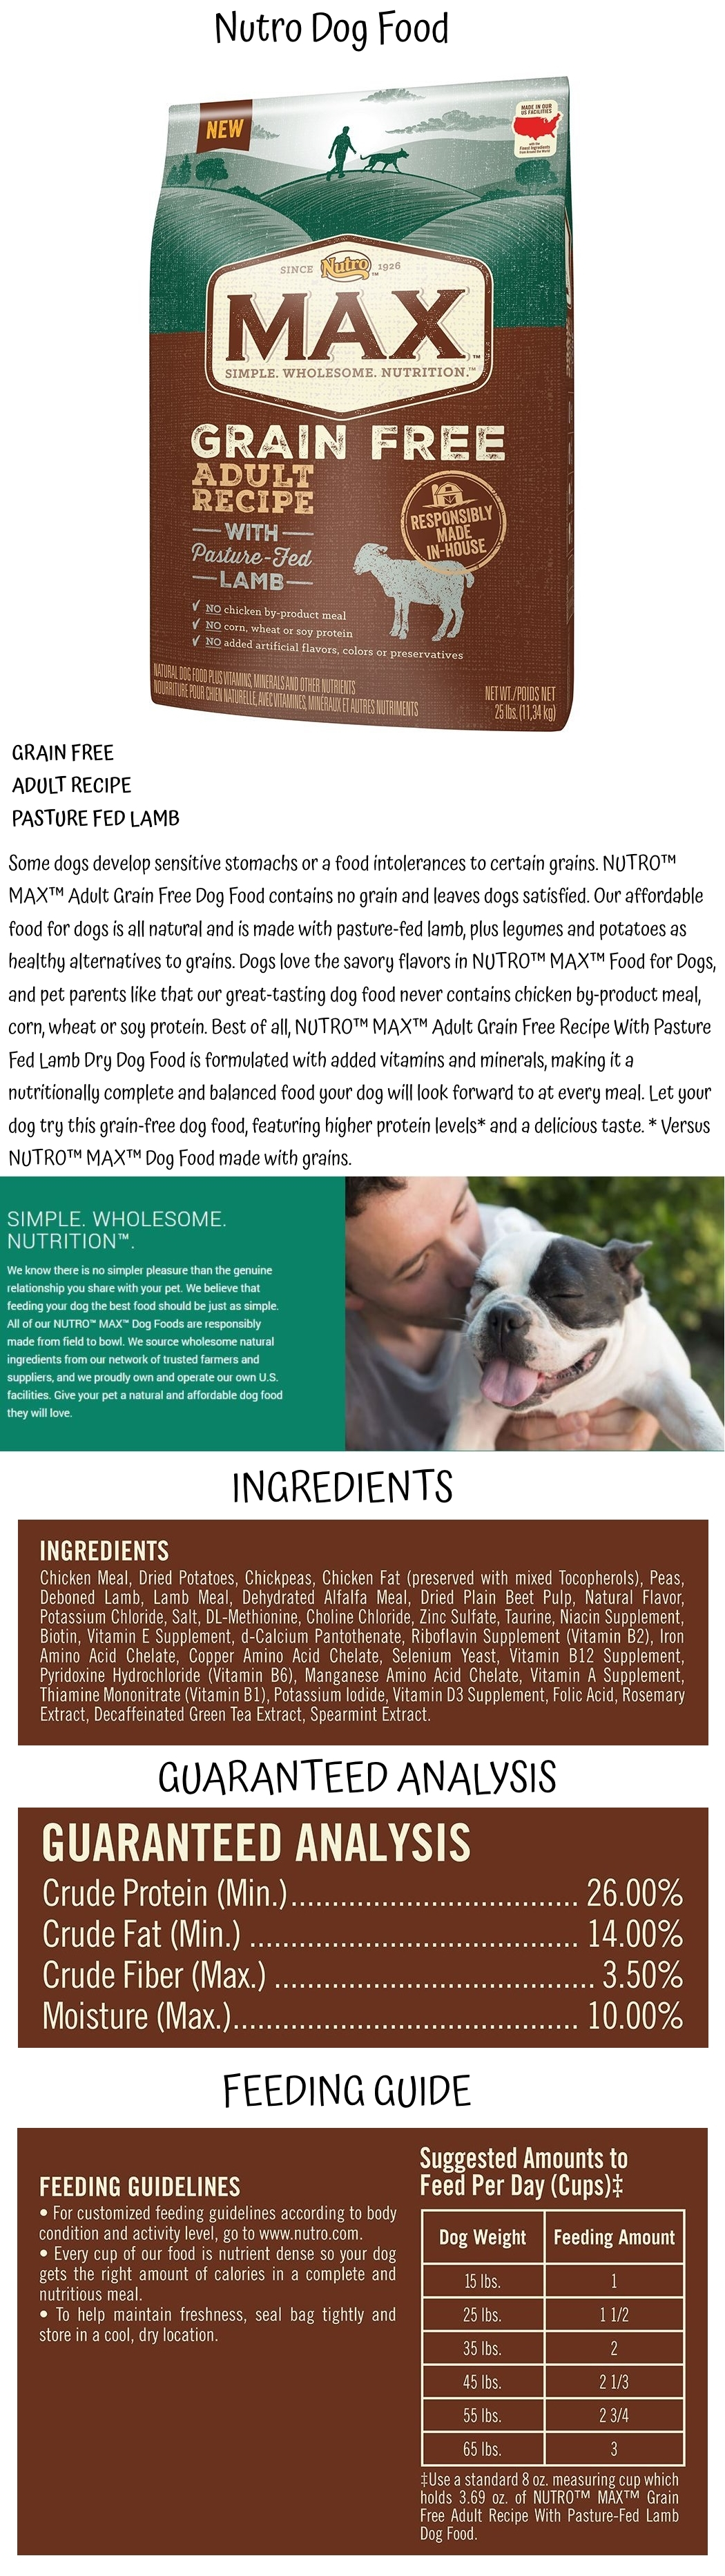 Pin By Best Pet Things On Nutro Dog Food Nutro Dog Food Dog